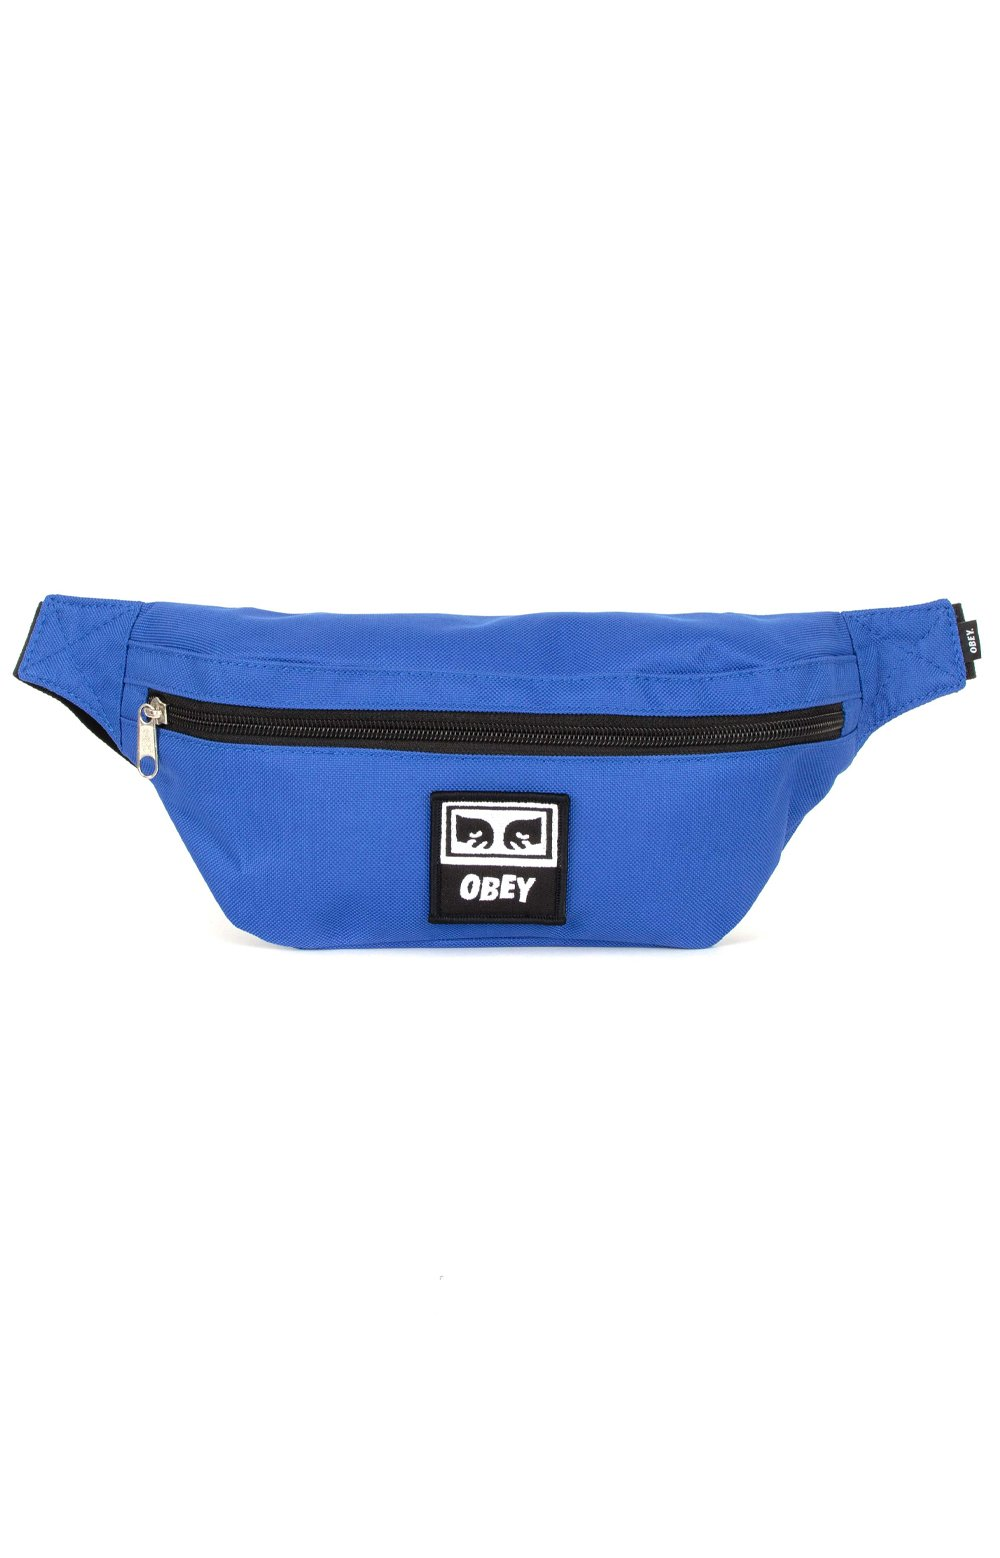 Daily Sling Pack - Royal Blue